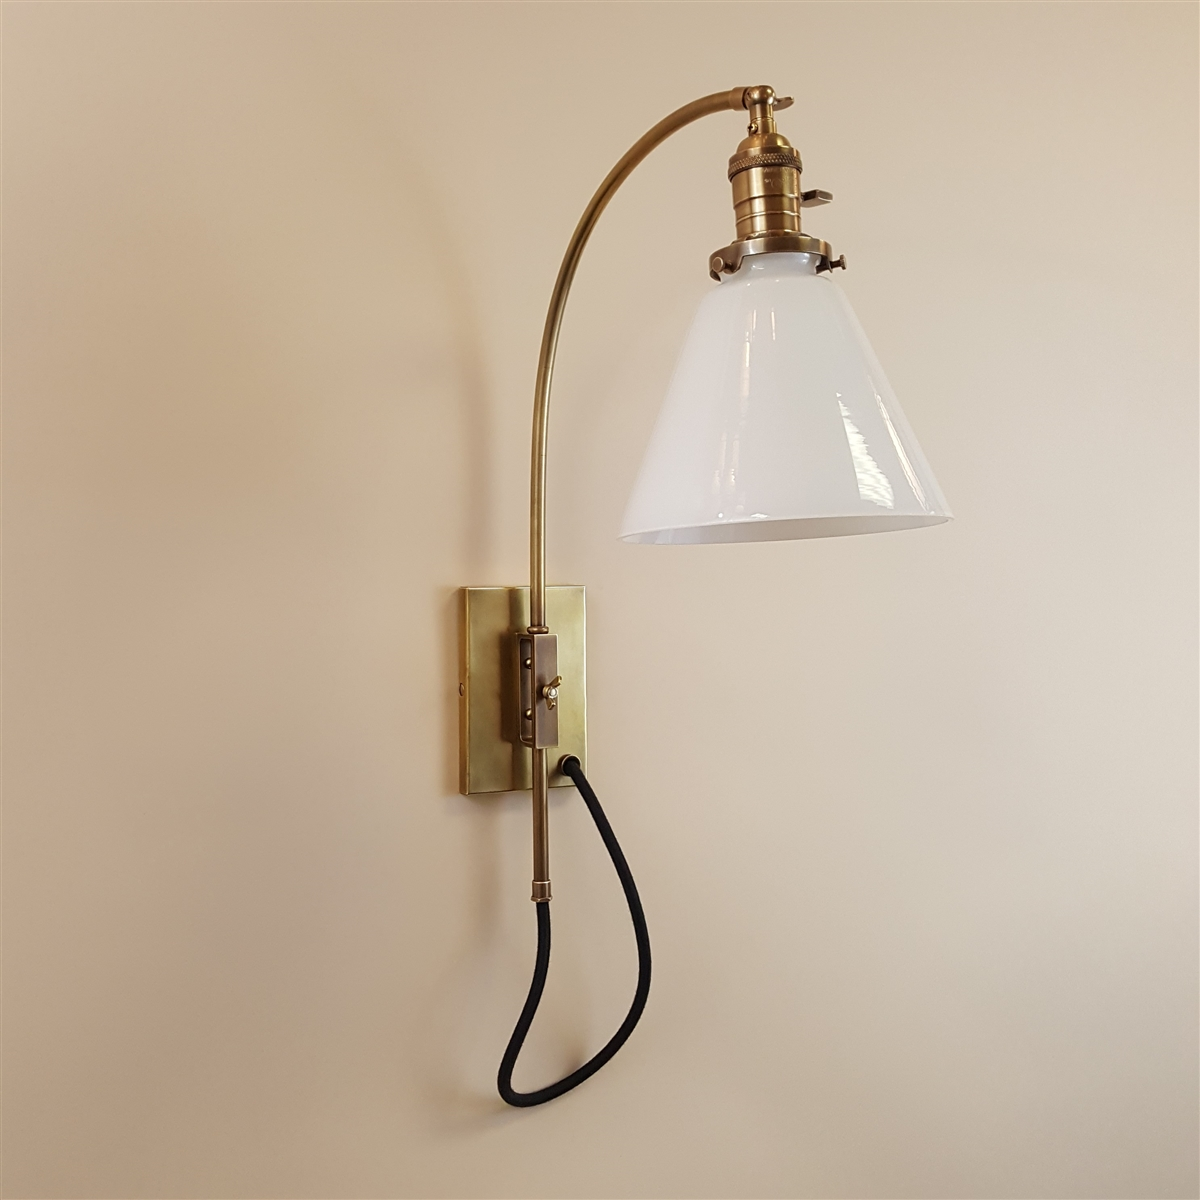 Reproduction adjustable brass wall light aloadofball Choice Image